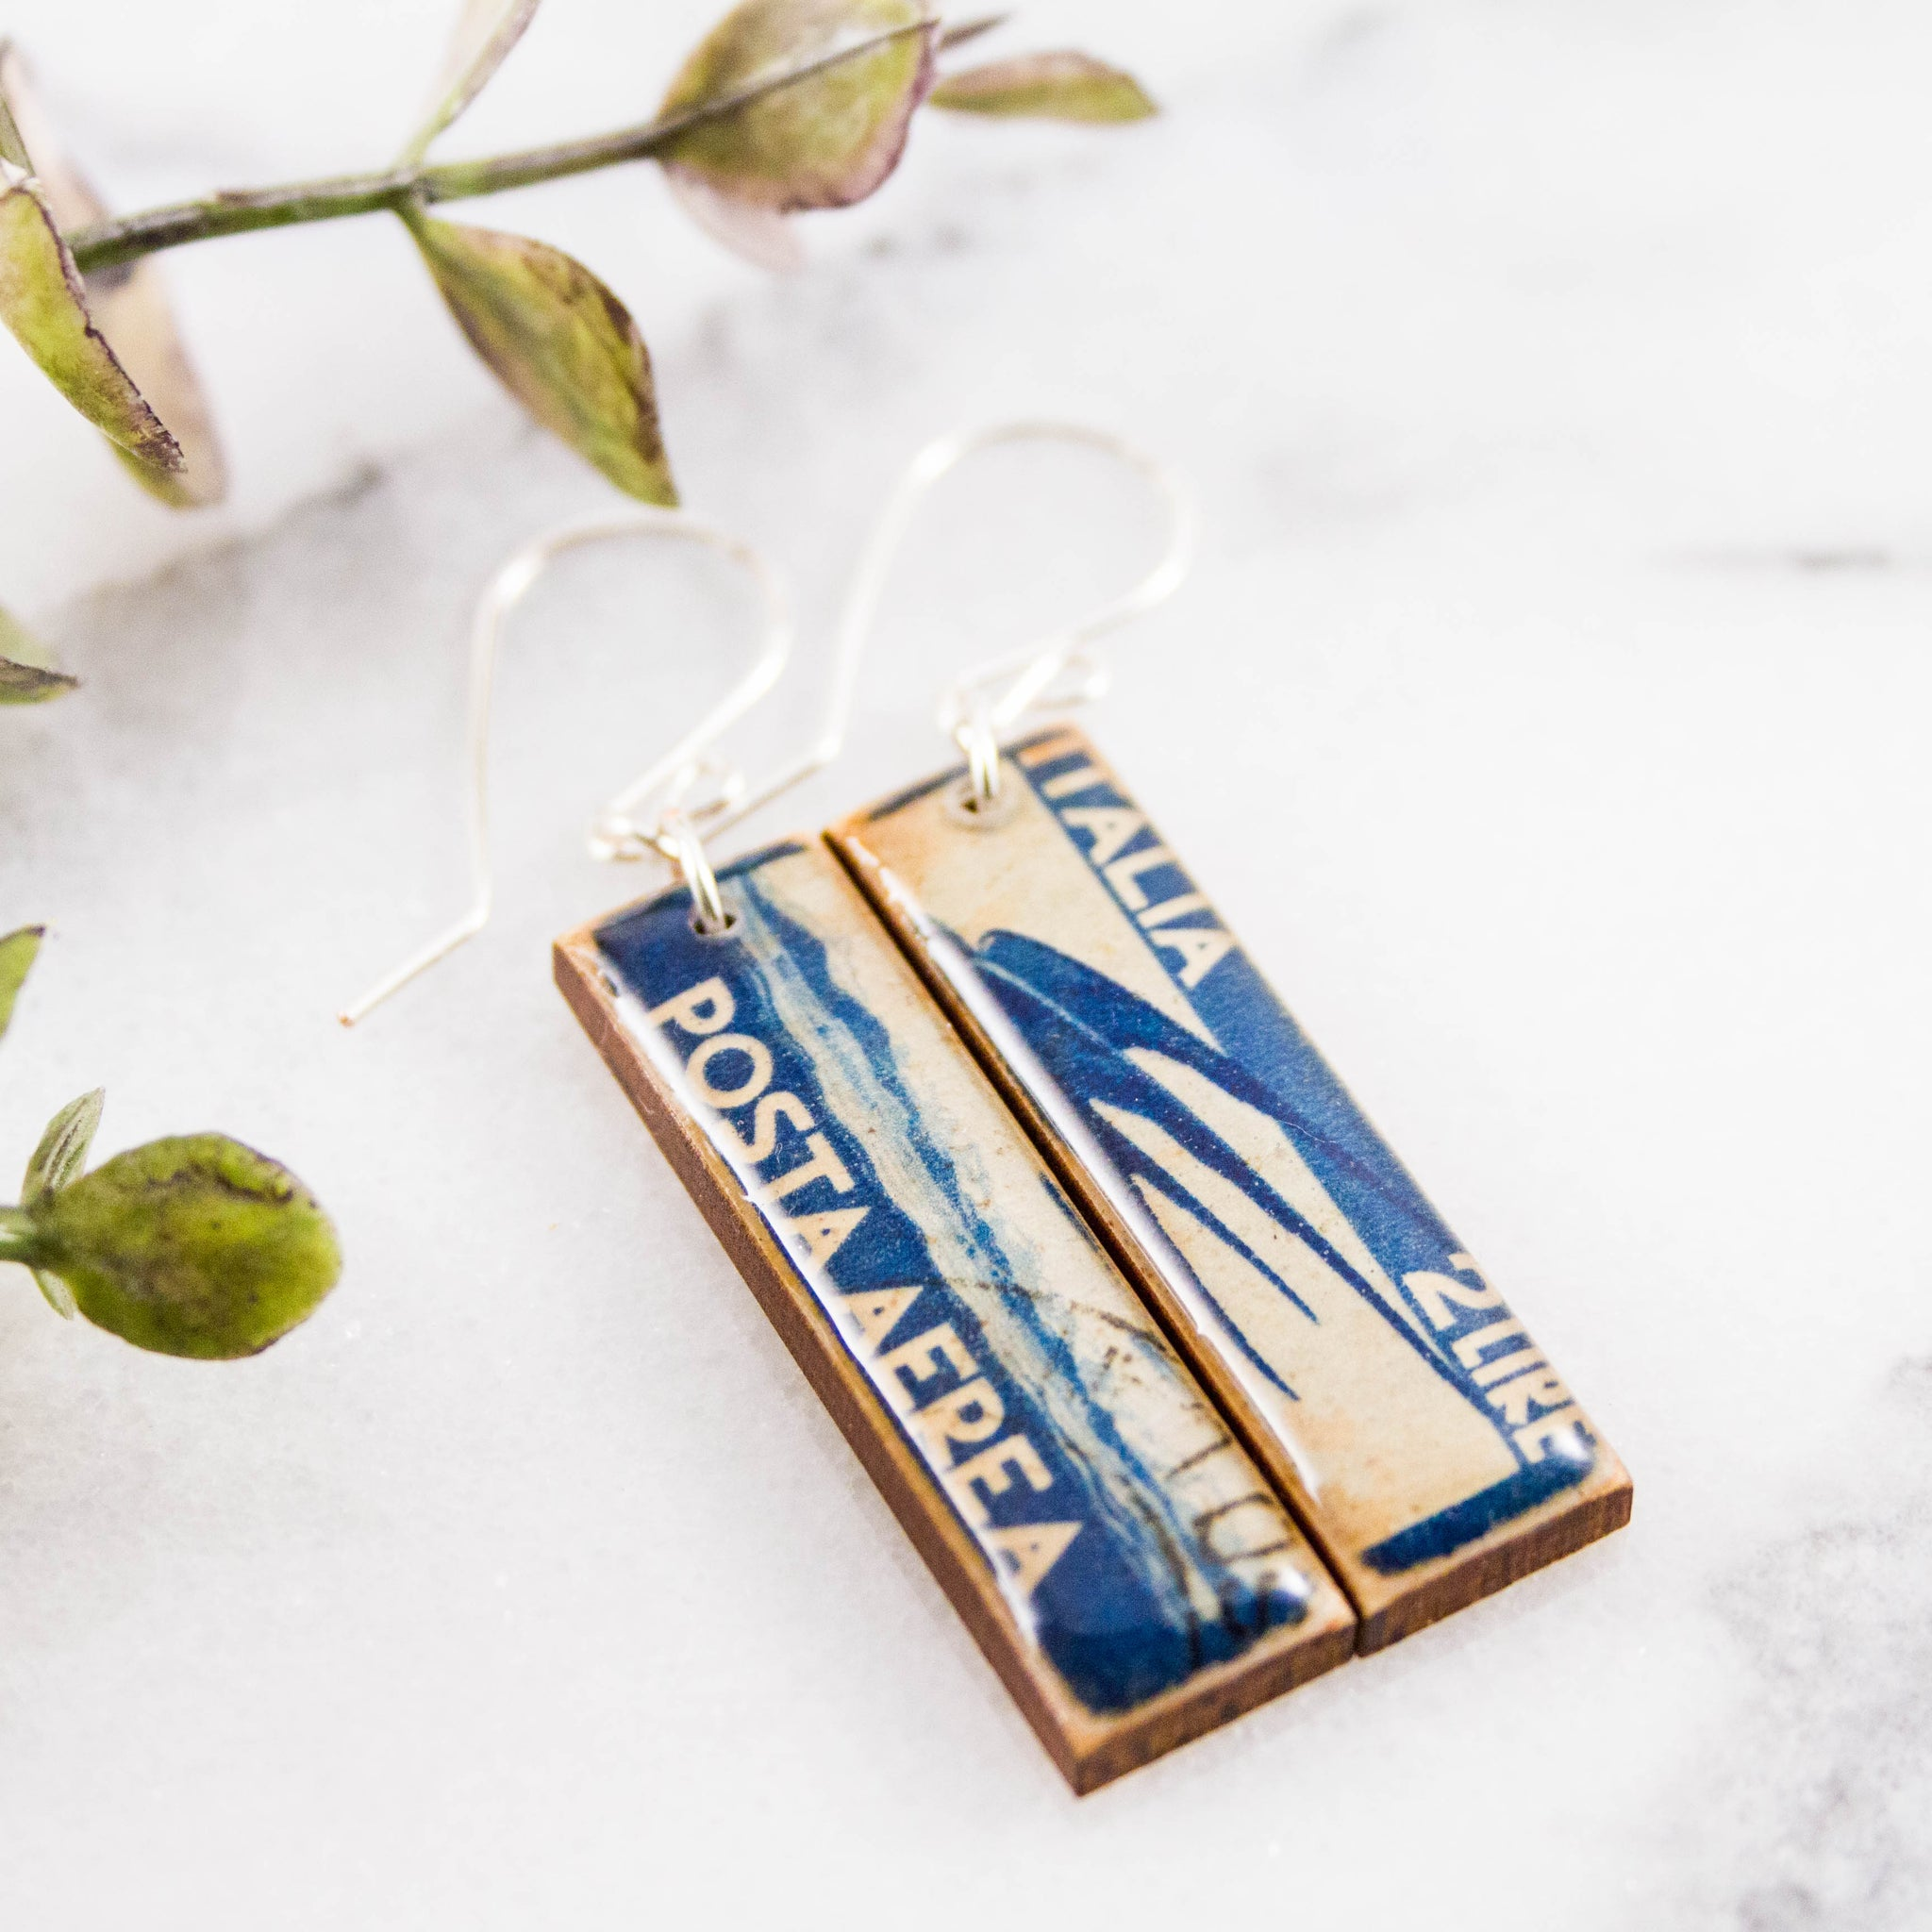 ITALY- Vintage Airmail Postage Stamp Earrings